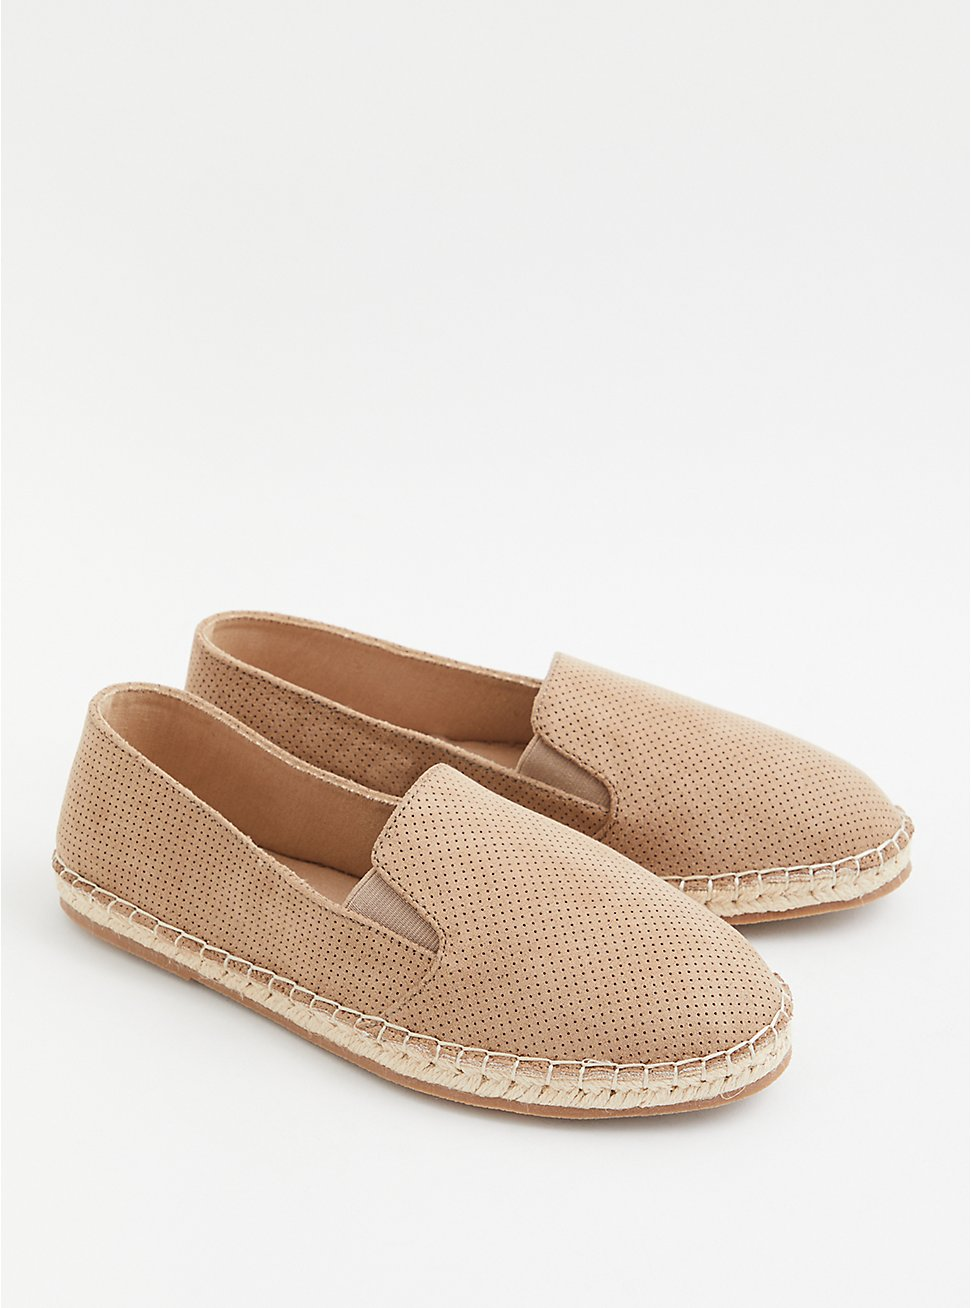 Taupe Faux Suede Perforated Espadrille Flat (WW), TAN/BEIGE, hi-res